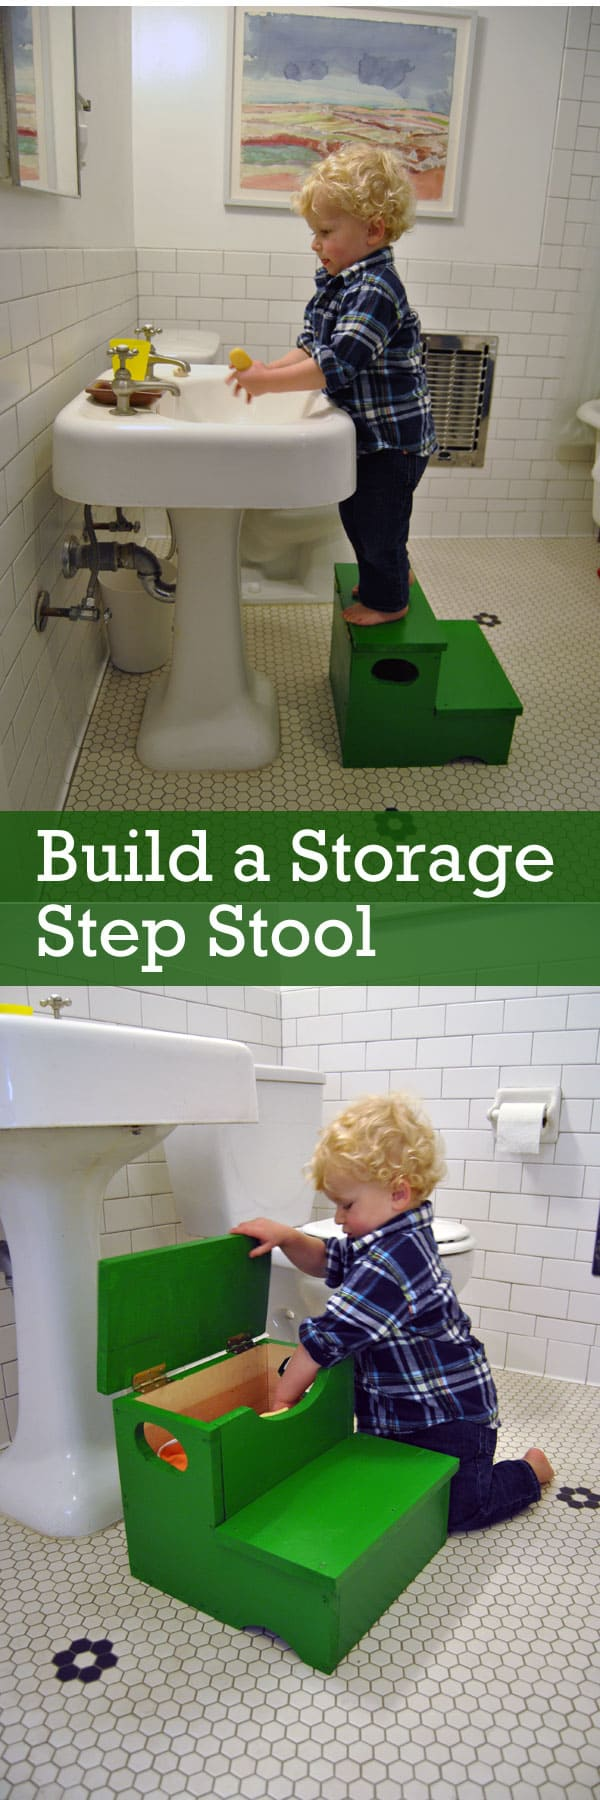 Swell How To Build A Storage Step Stool Machost Co Dining Chair Design Ideas Machostcouk